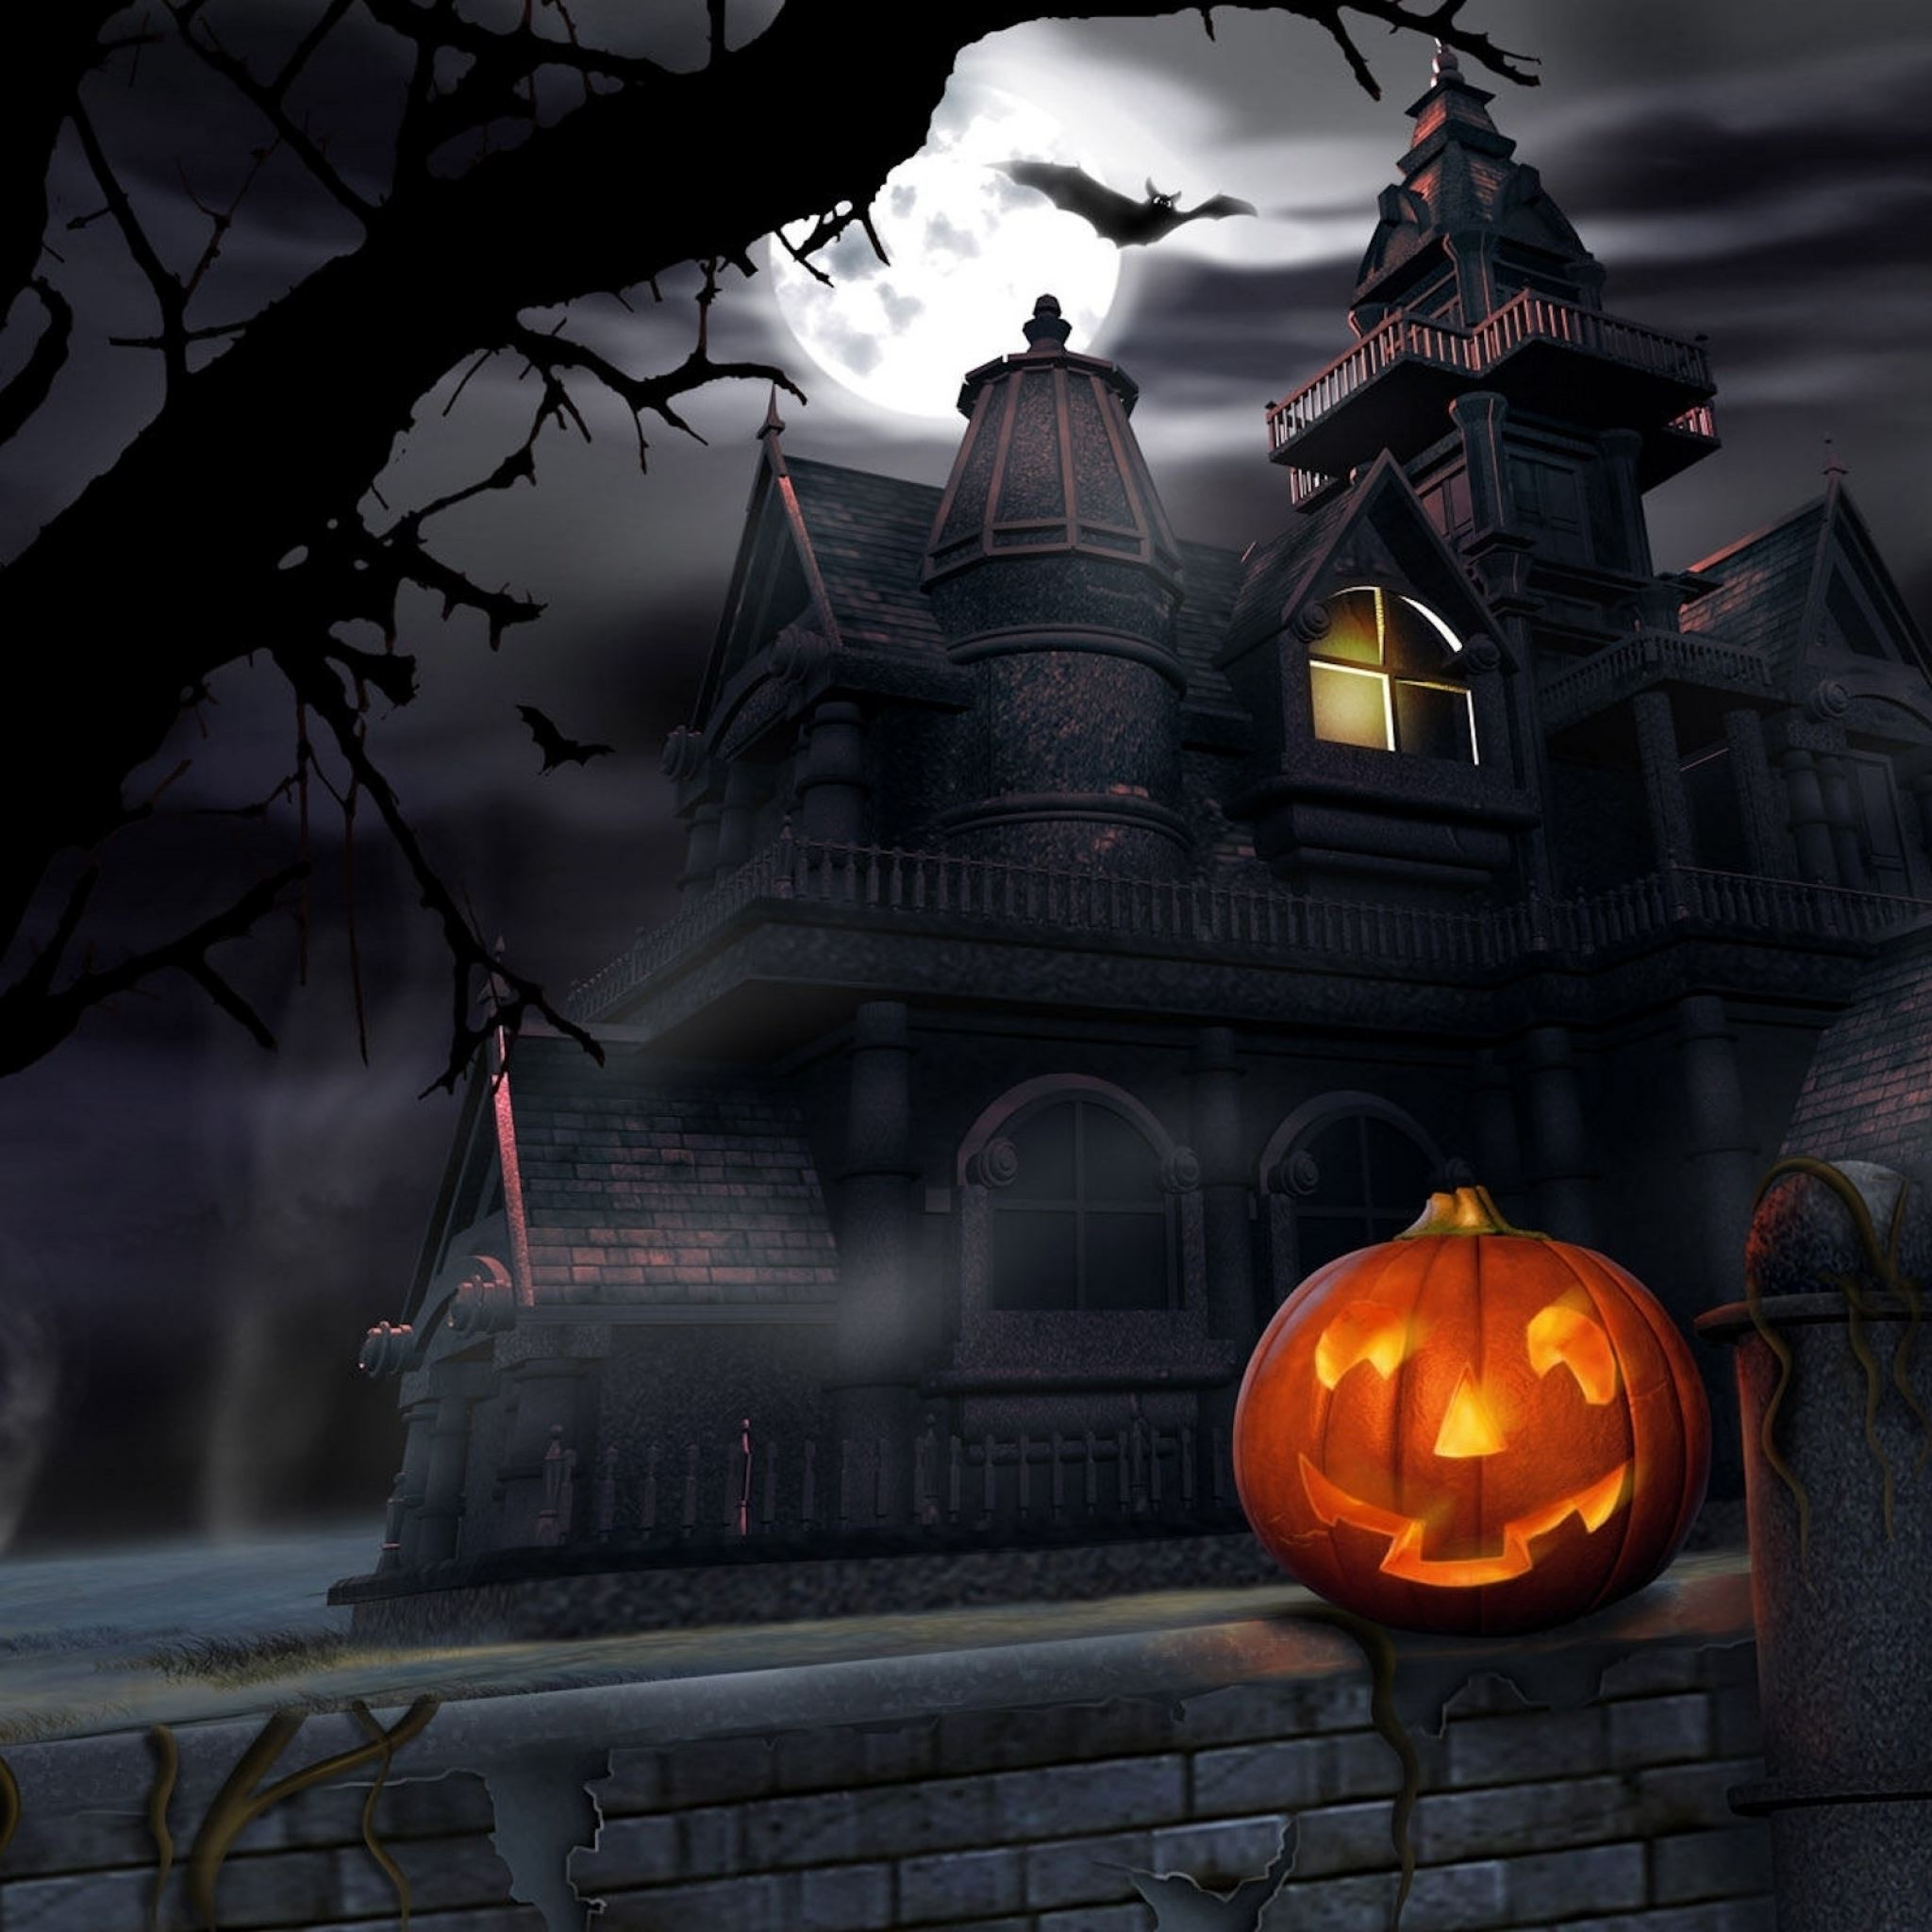 Haunted House Halloween Party Trick Or Treat Ipad Air Wallpapers Free Download